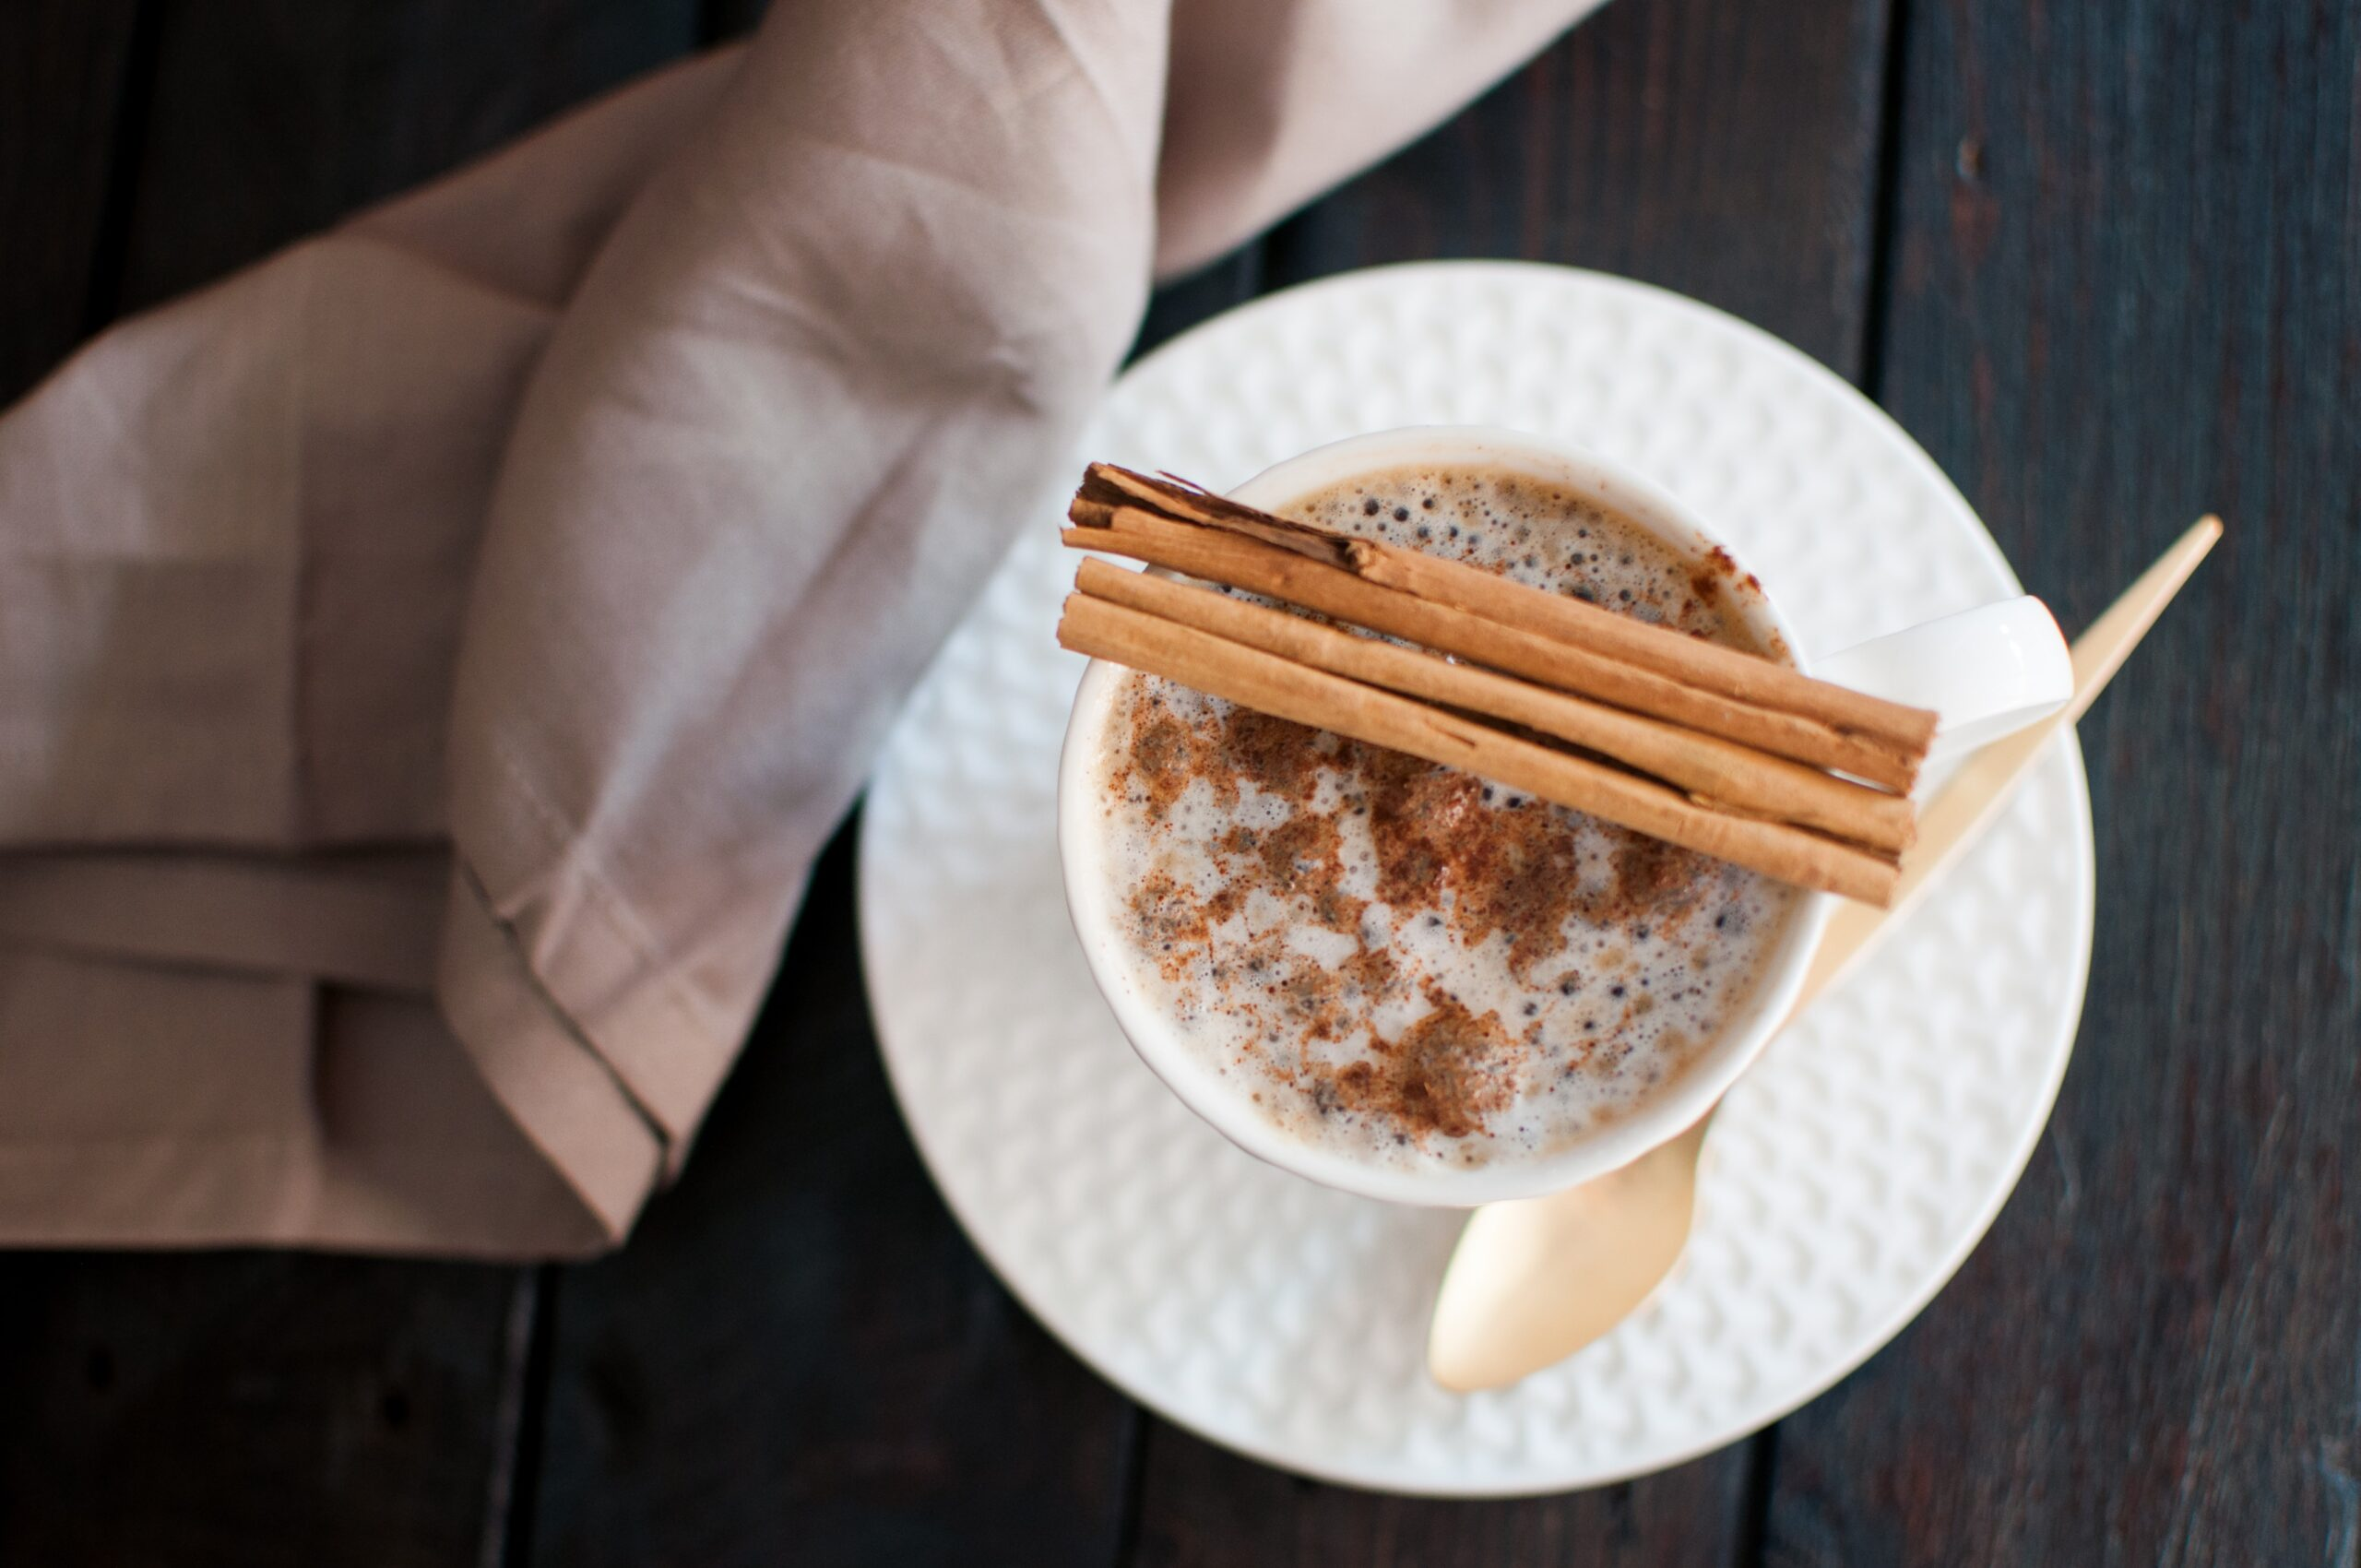 a cup of coffee with cinnamon sticks resting on the edge